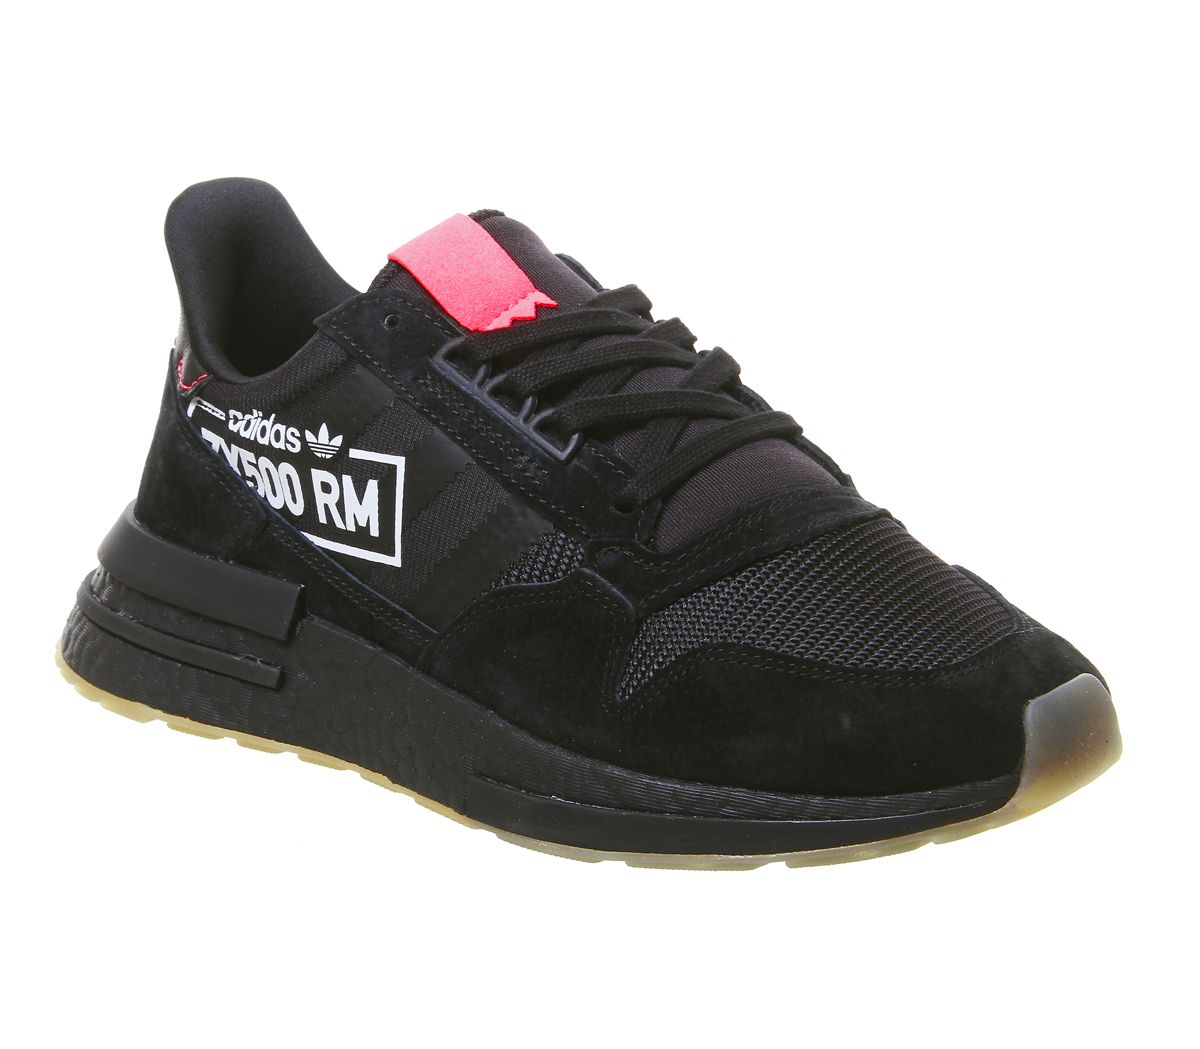 check out ad87e db439 Zx500 Rm Trainers